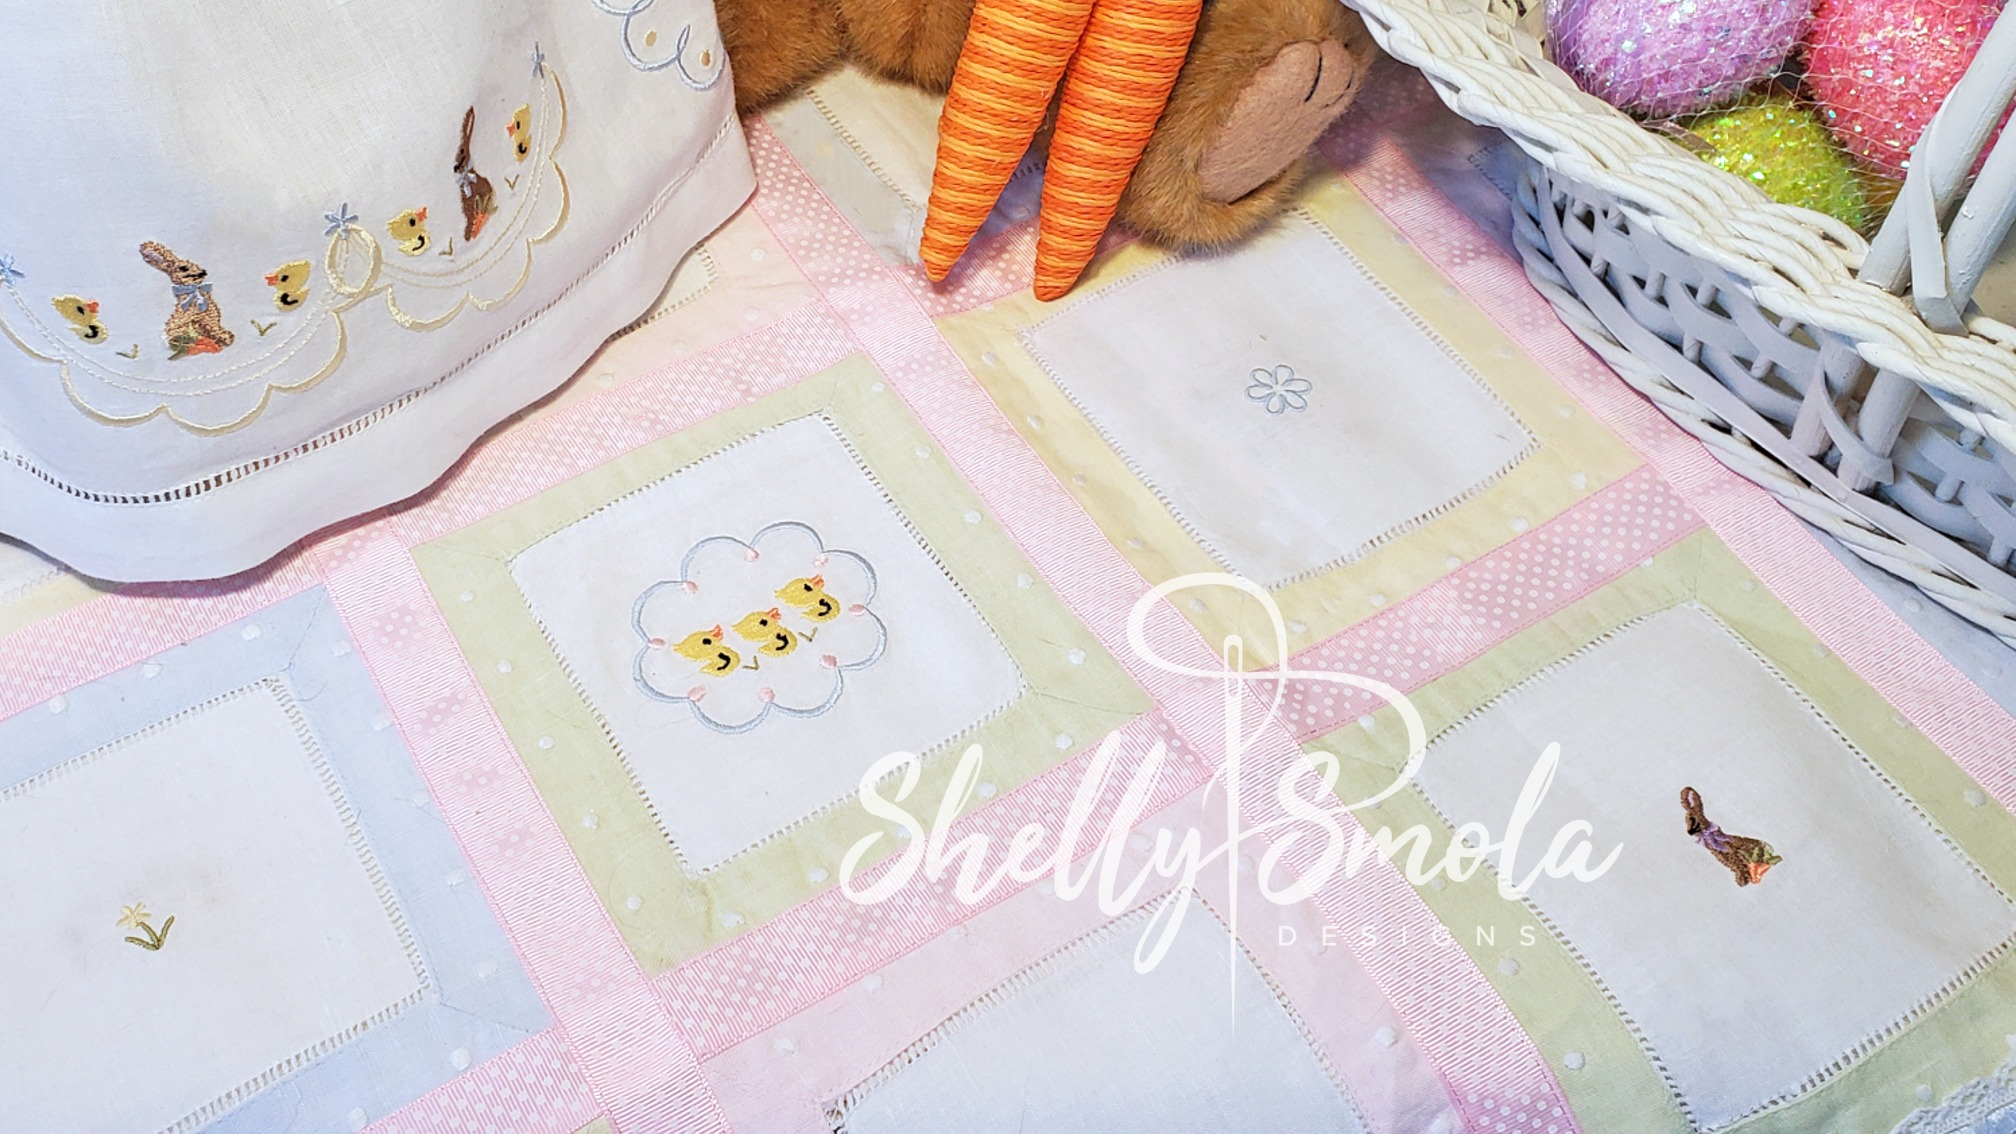 Spring Accent Coverlet by Shelly Smola